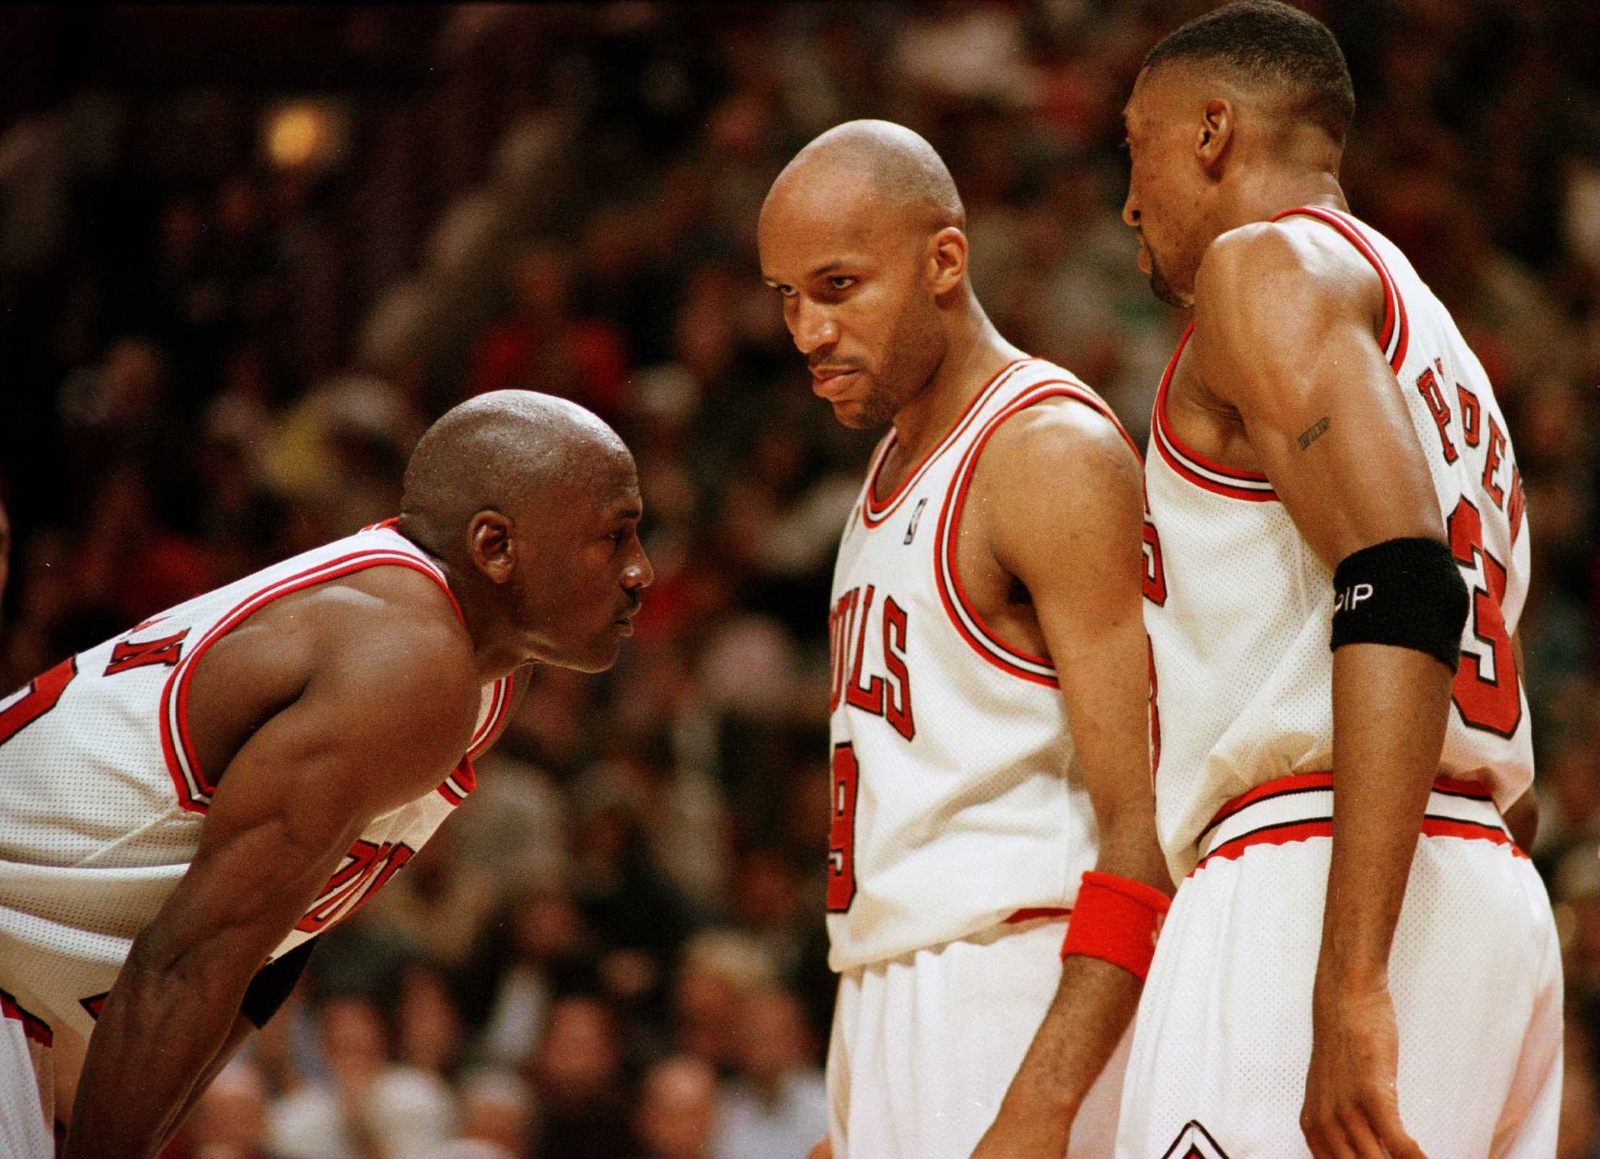 7 Jun 1996: Michael Jordan of the Chicago Bull, left, discusses strategy with teammates Ron Harper, center, and Scottie Pippen during a time-out on the court during the fourth quarter of game two in the NBA Finals at the United Center in Chicago,Illinois